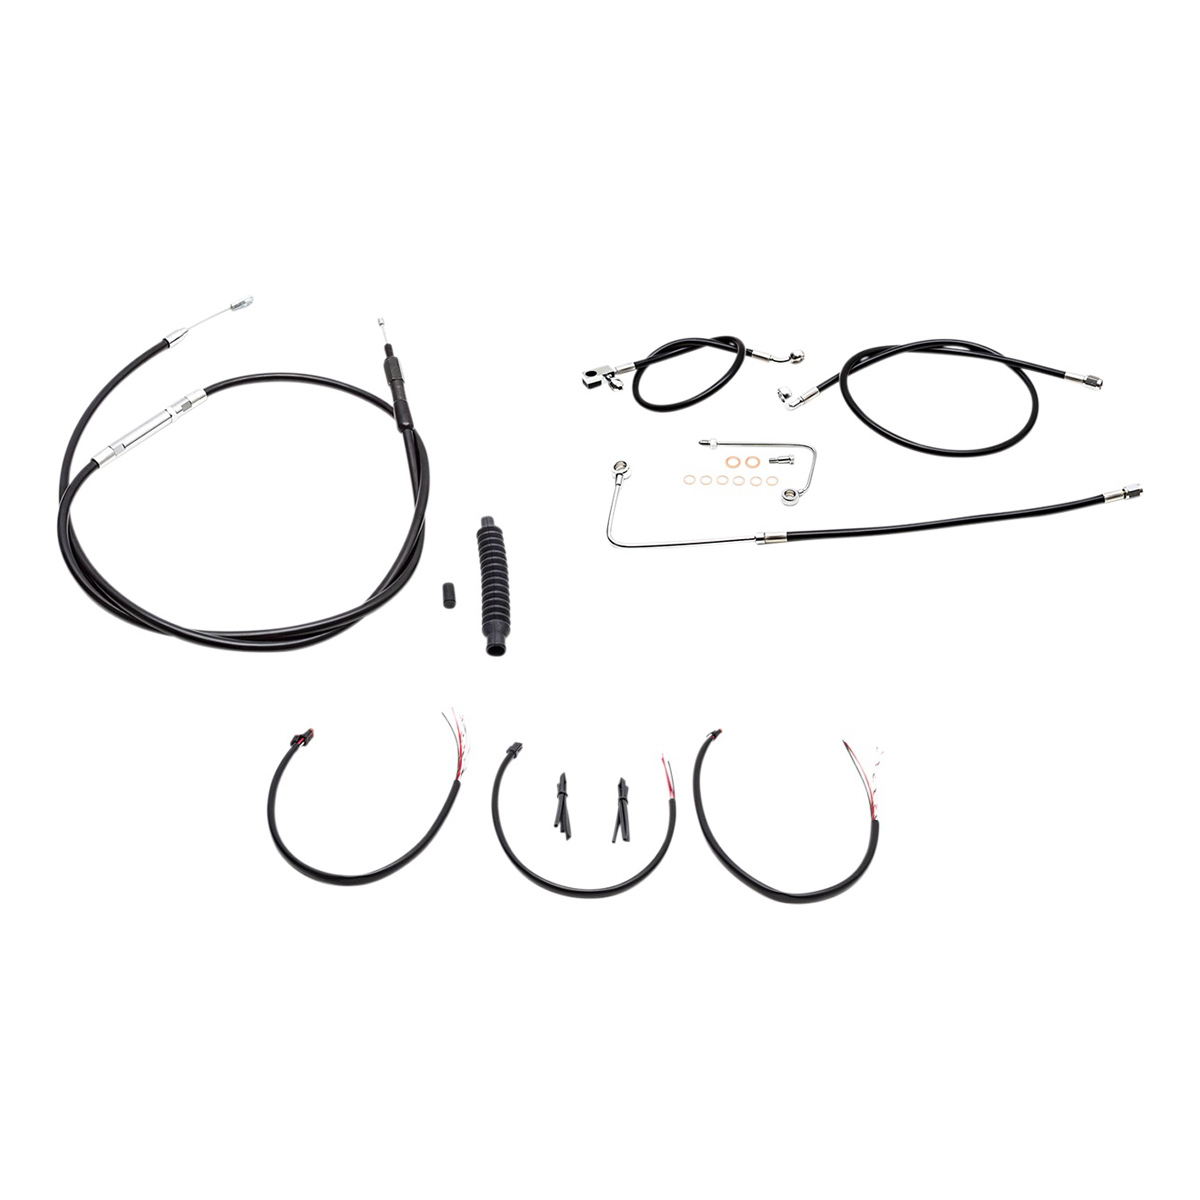 LA Choppers Black Complete Cable/Line/Wiring Handlebar Kit for 15″-17″ Bars on Models with ABS